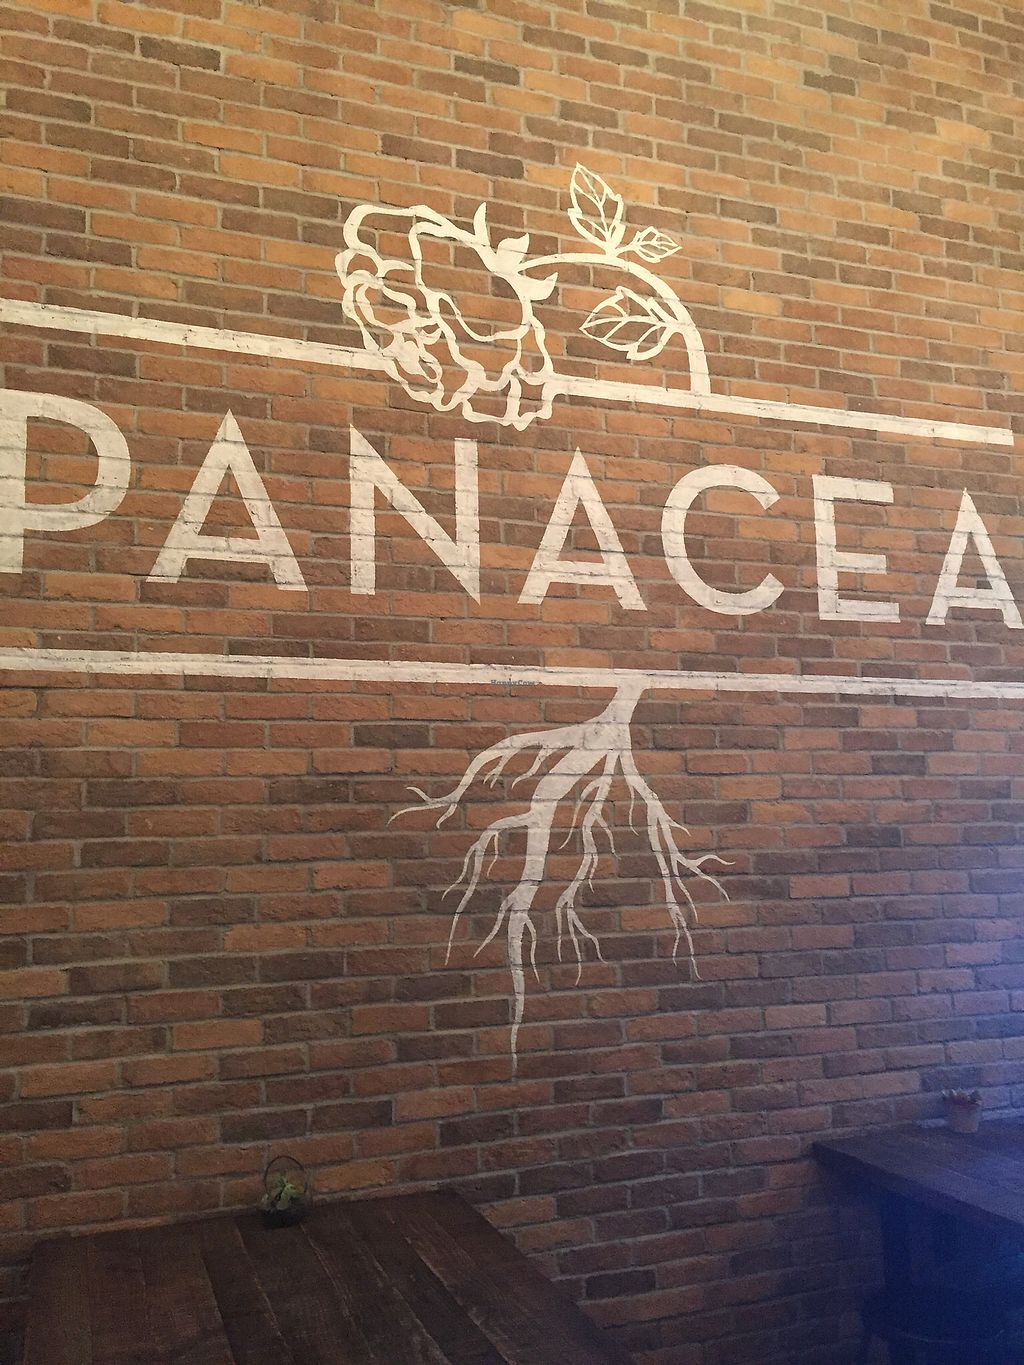 """Photo of Panacea  by <a href=""""/members/profile/Vegtrish"""">Vegtrish</a> <br/>Beautiful logo! <br/> March 13, 2018  - <a href='/contact/abuse/image/106333/370099'>Report</a>"""